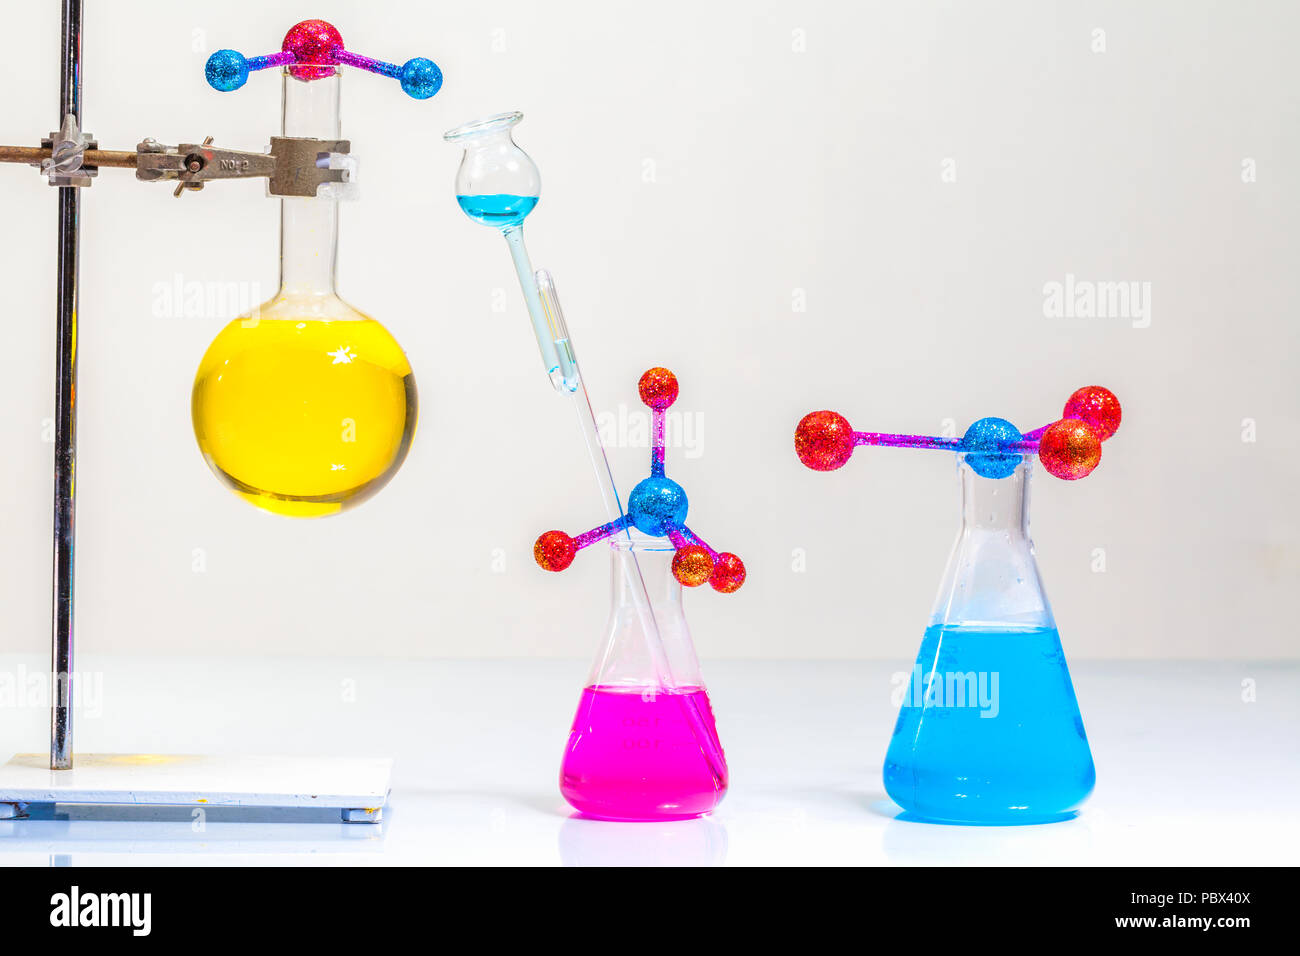 Lab Experiments Molecule Structure With Chemical